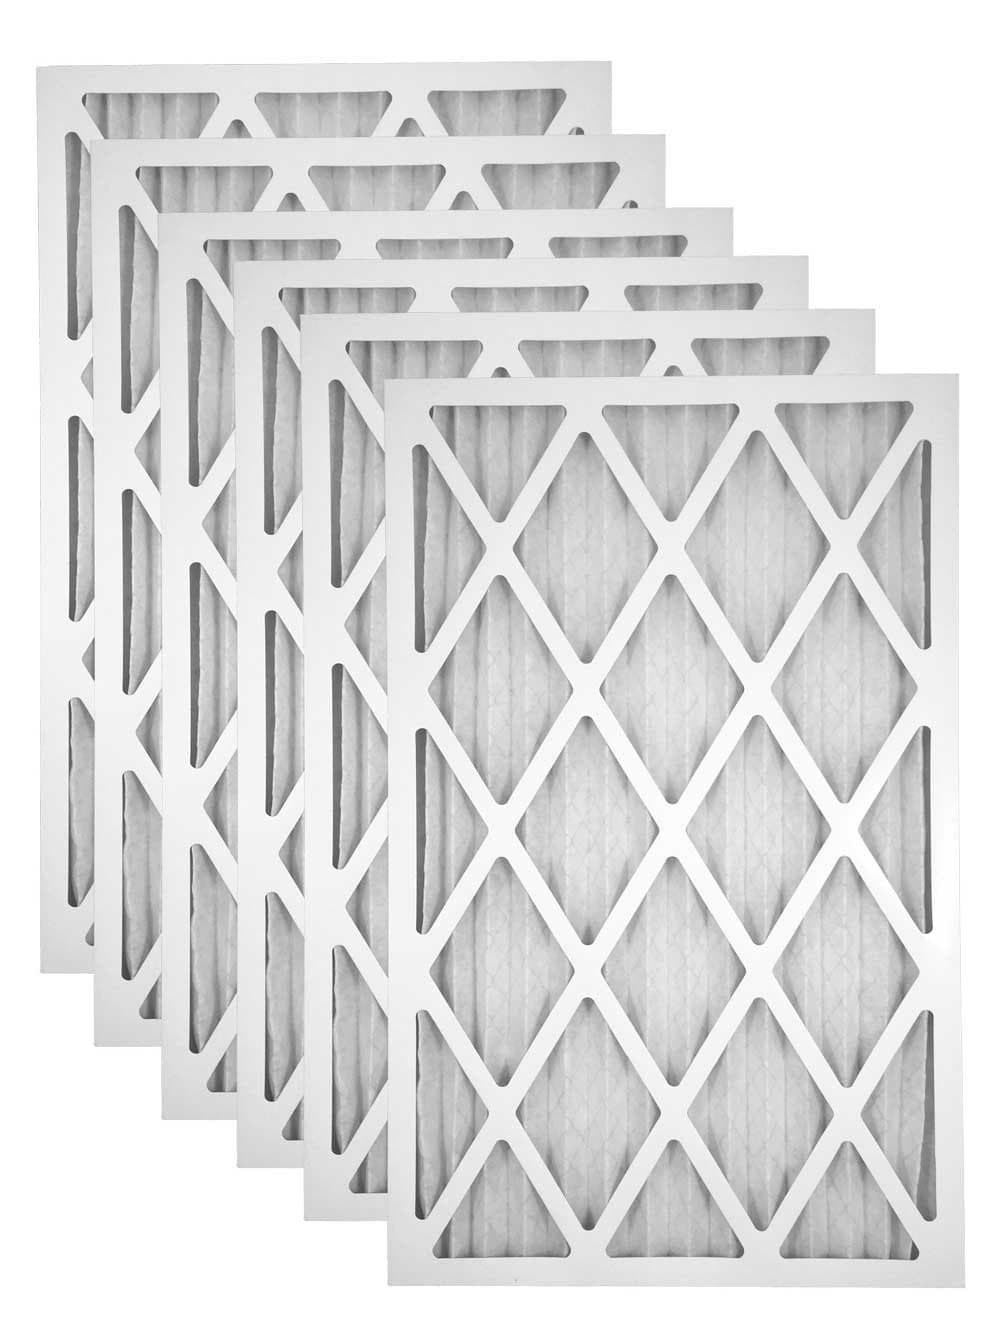 14x20x1 Merv 13 AC Furnace Filter - Case of 6